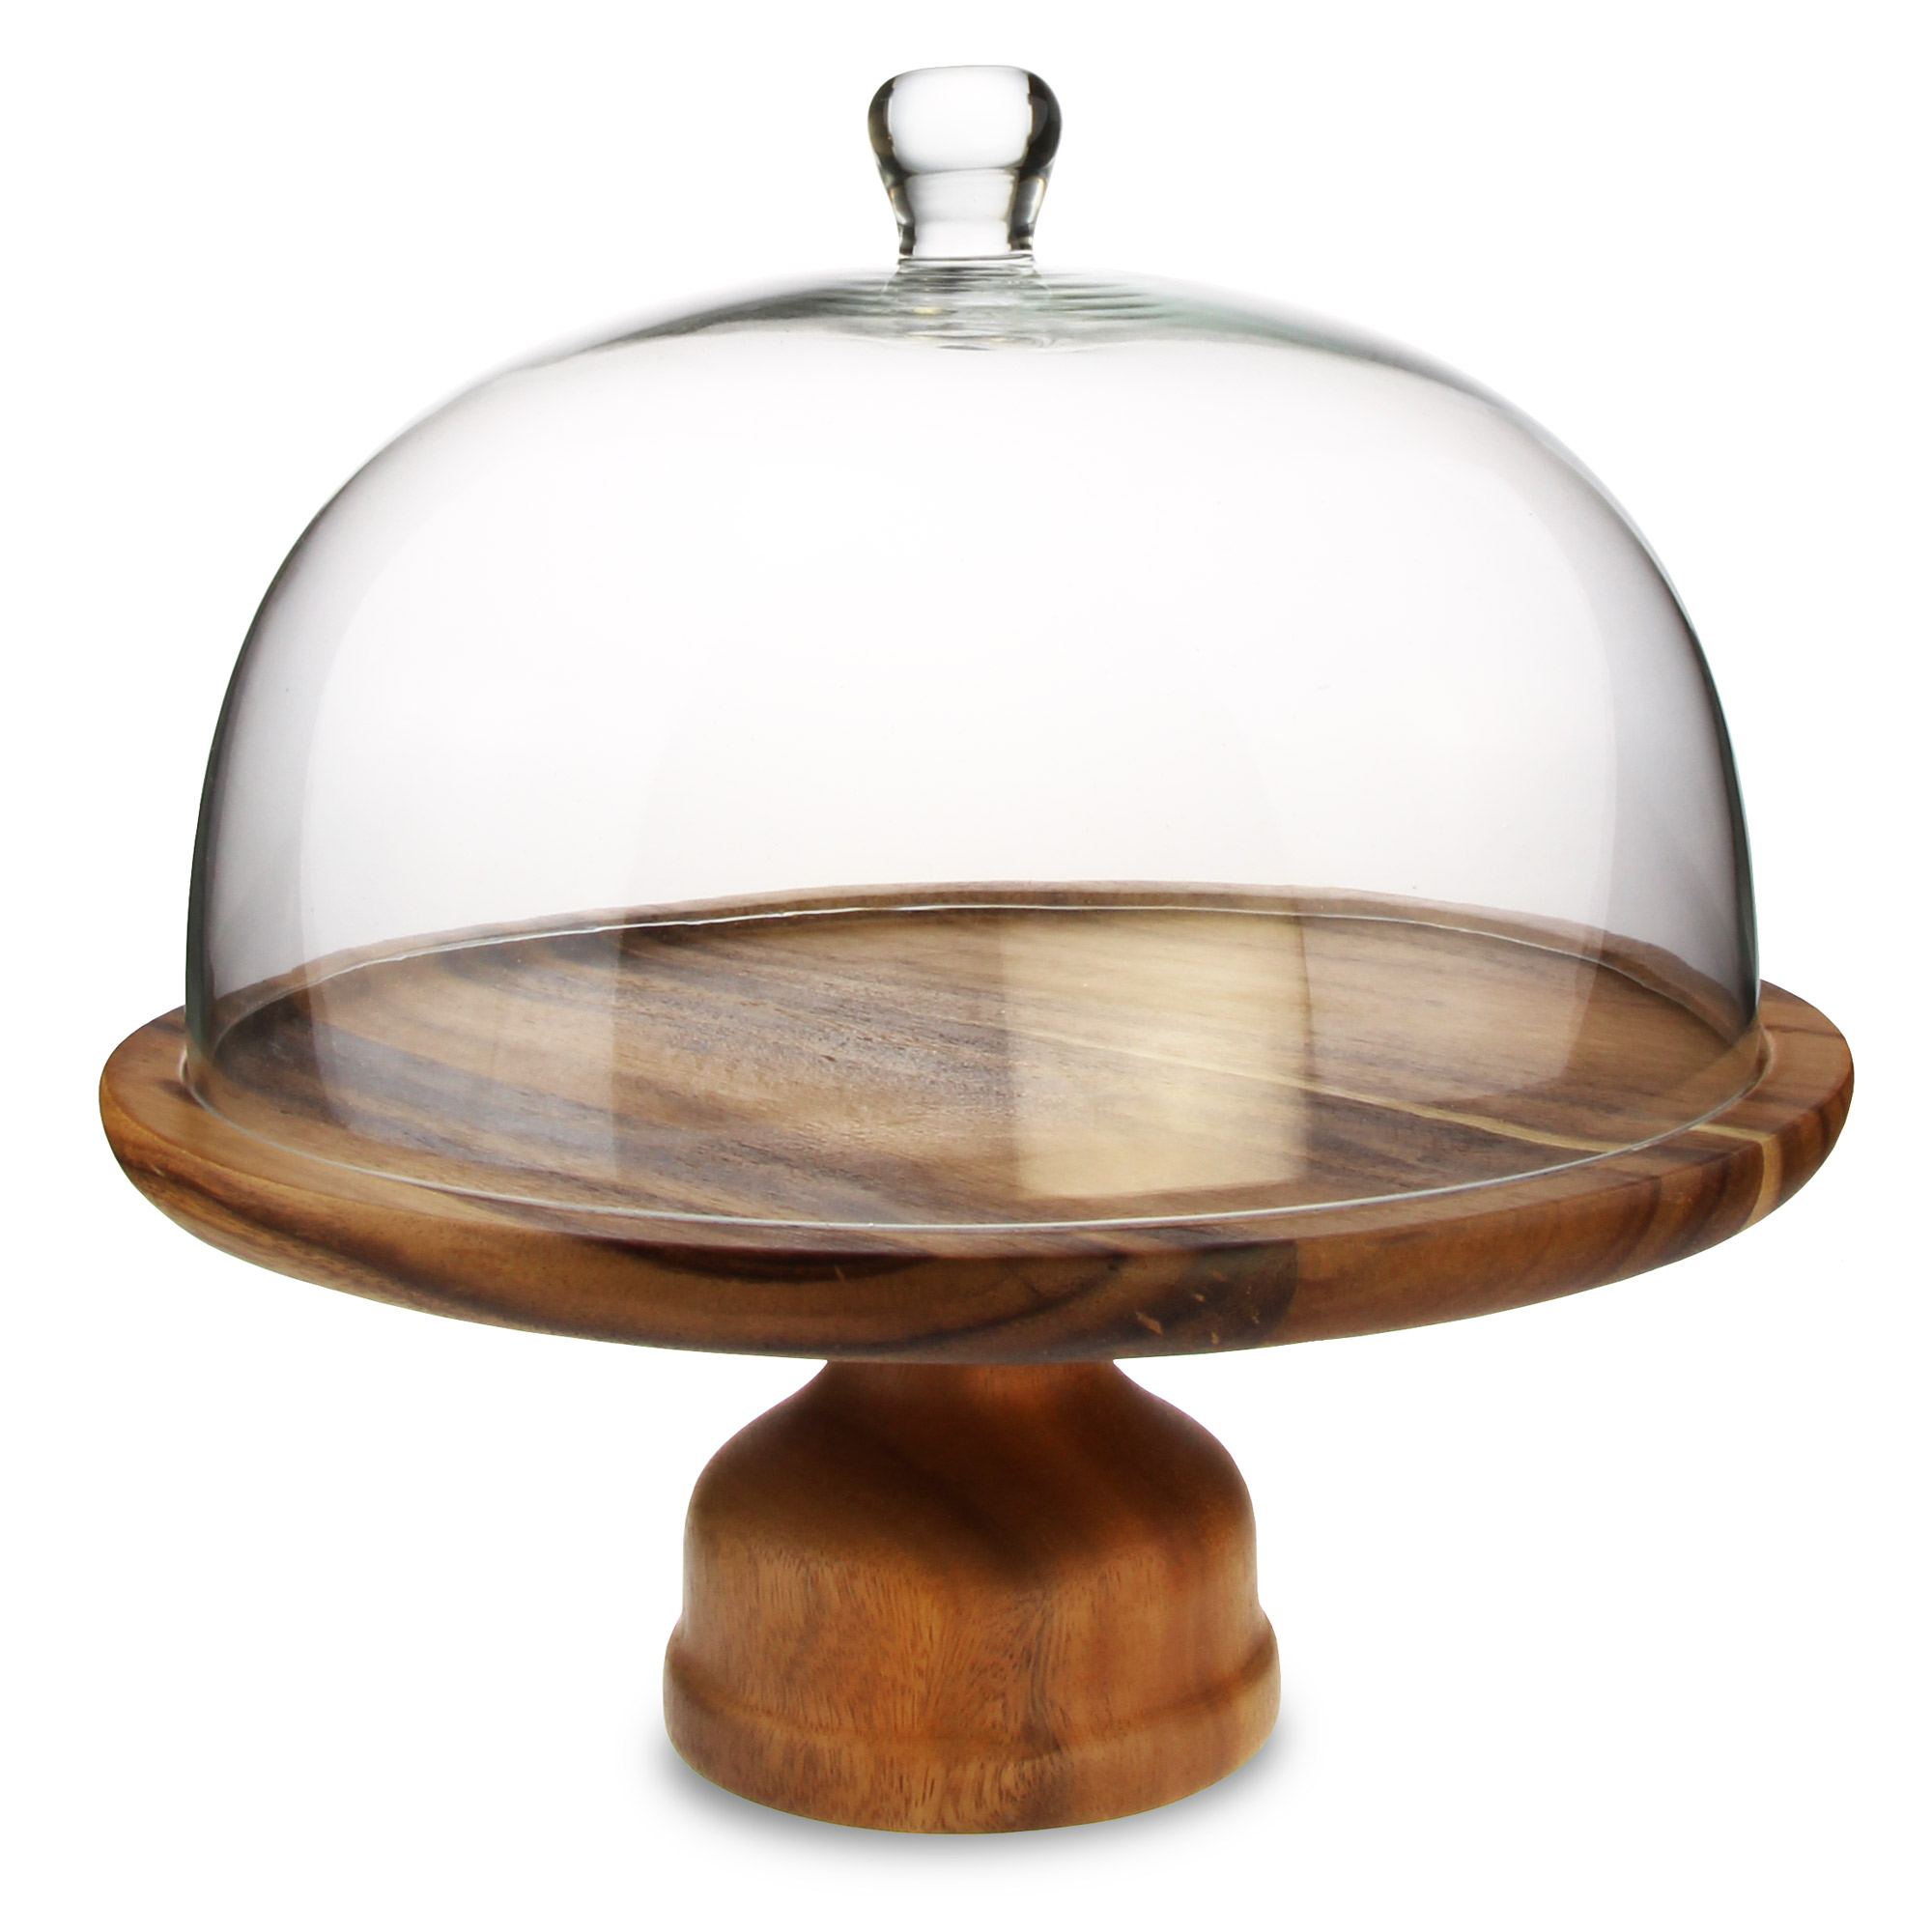 Genware Acacia Wood Cake Stand and Glass Cake Dome  sc 1 st  Drinkstuff & Genware Wooden Cake Stand and Dome Set at drinkstuff.com